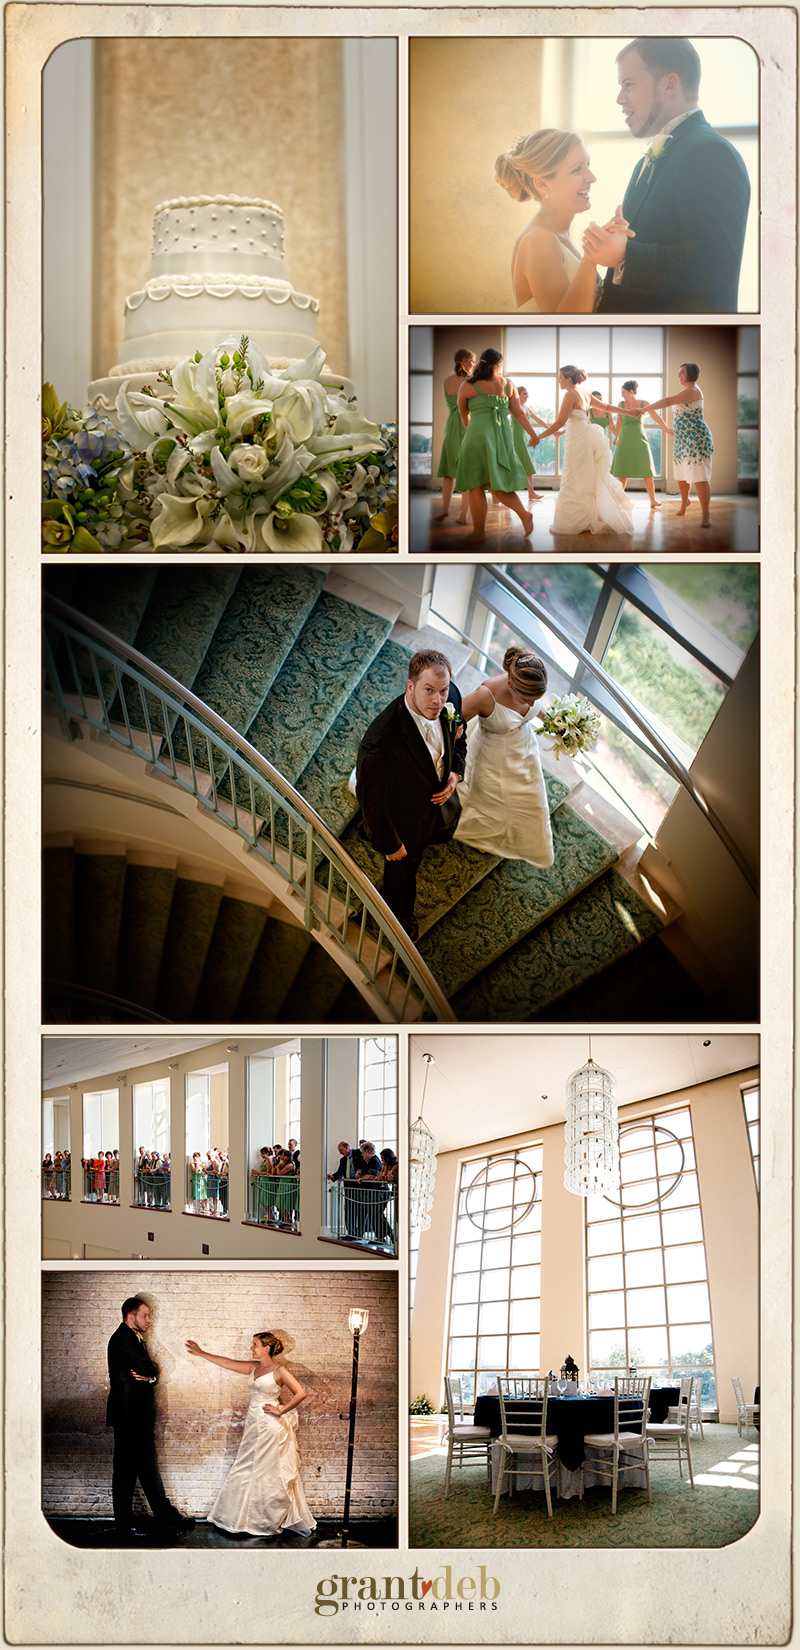 harrison opera house wedding photographers | virginia beach wedding photographer - Hampton Roads Wedding Photography - Hampton Roads Wedding Photographers